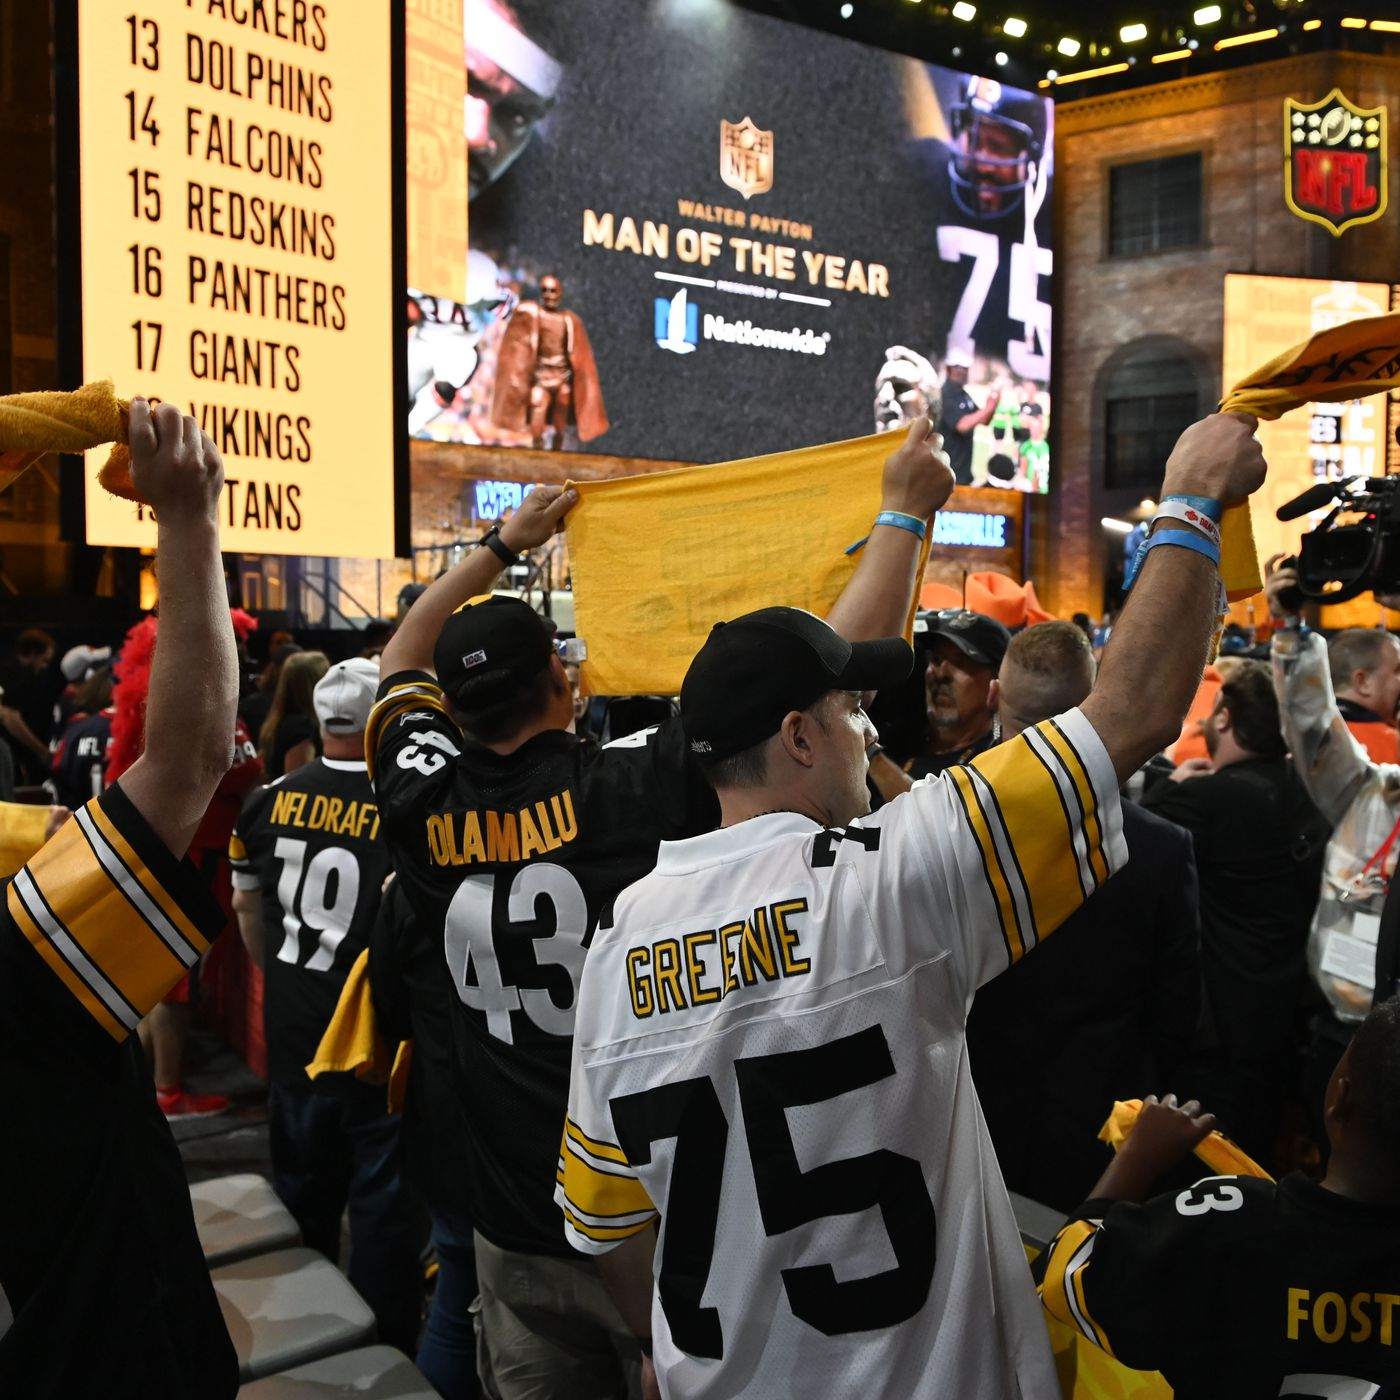 bdc24f053 Pittsburgh Steelers fan guide to Day 2 of the 2019 NFL Draft ...